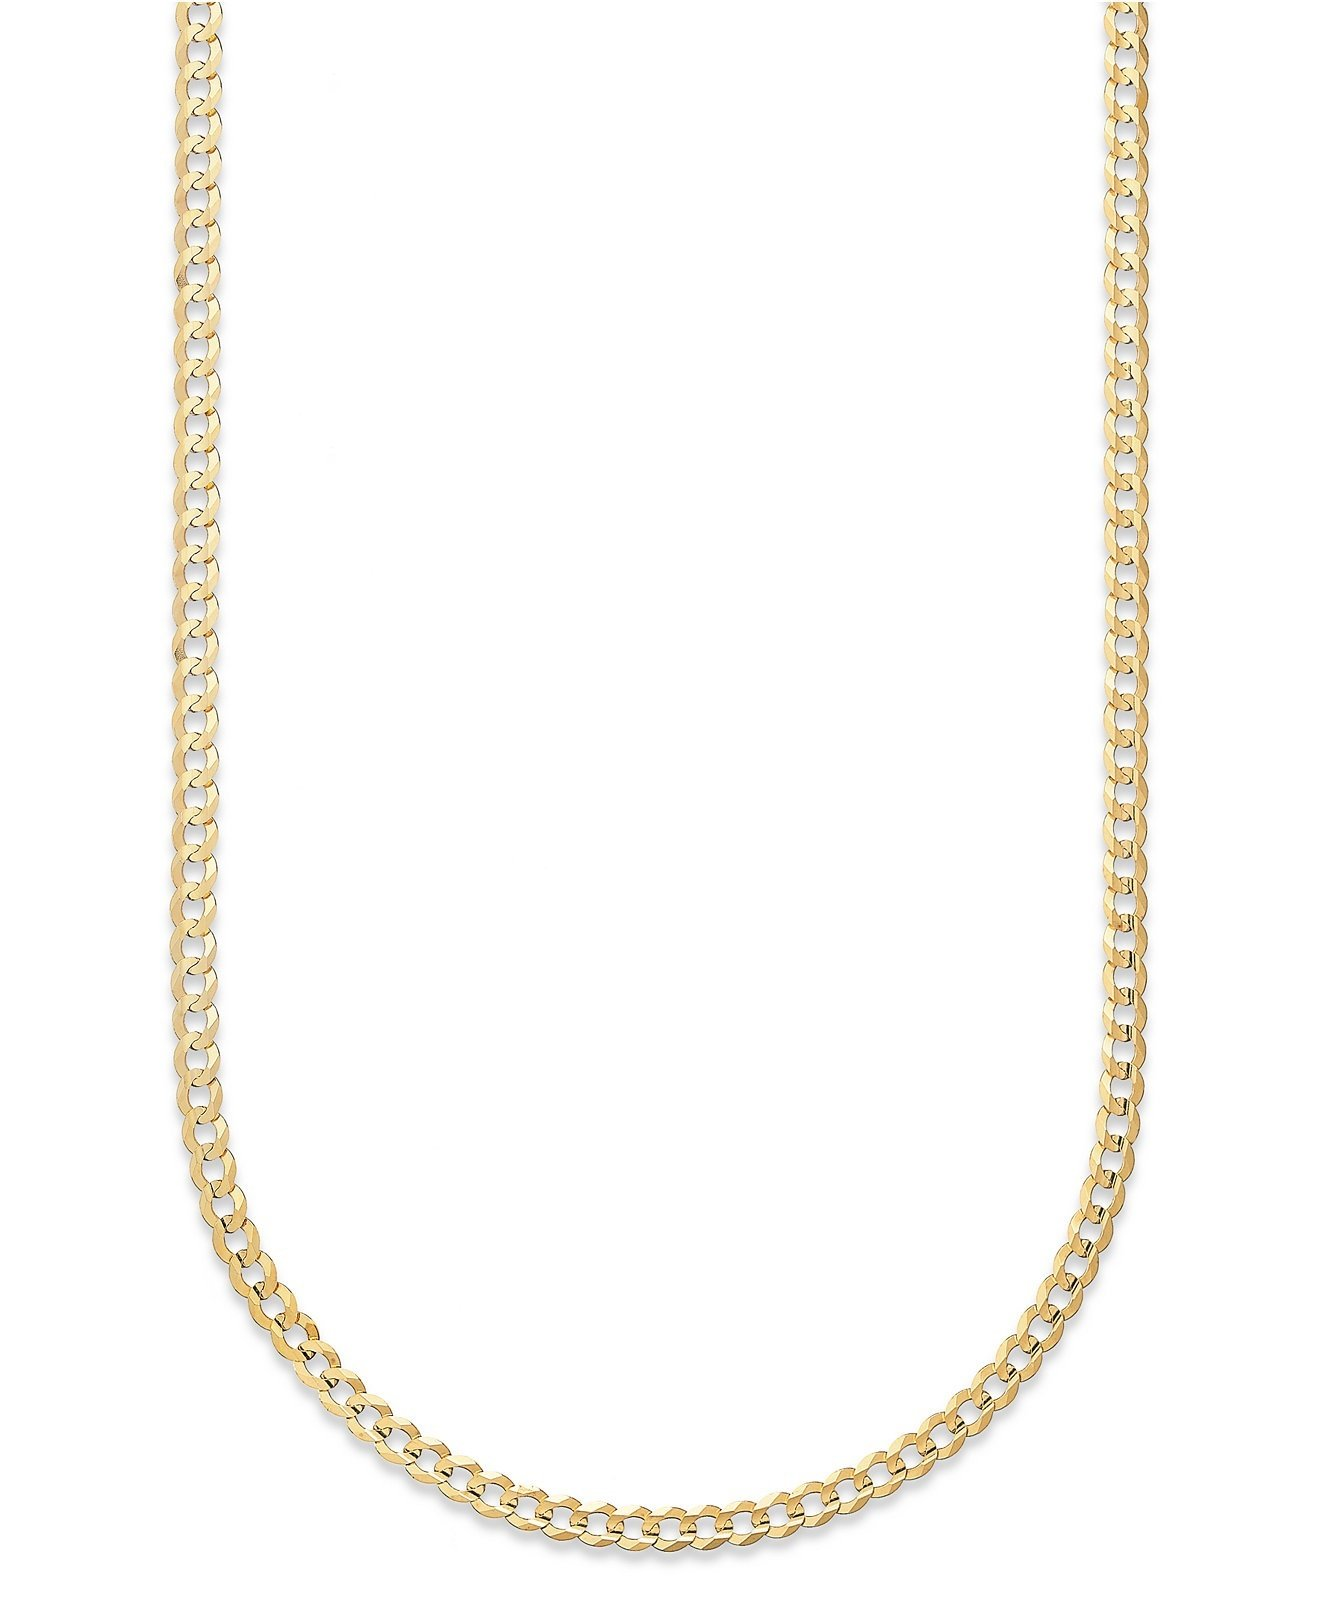 18 Karat Solid Yellow Gold 2mm Cuban Link Curb Chain Necklace- 18K Solid Gold- Made in Italy- 30''